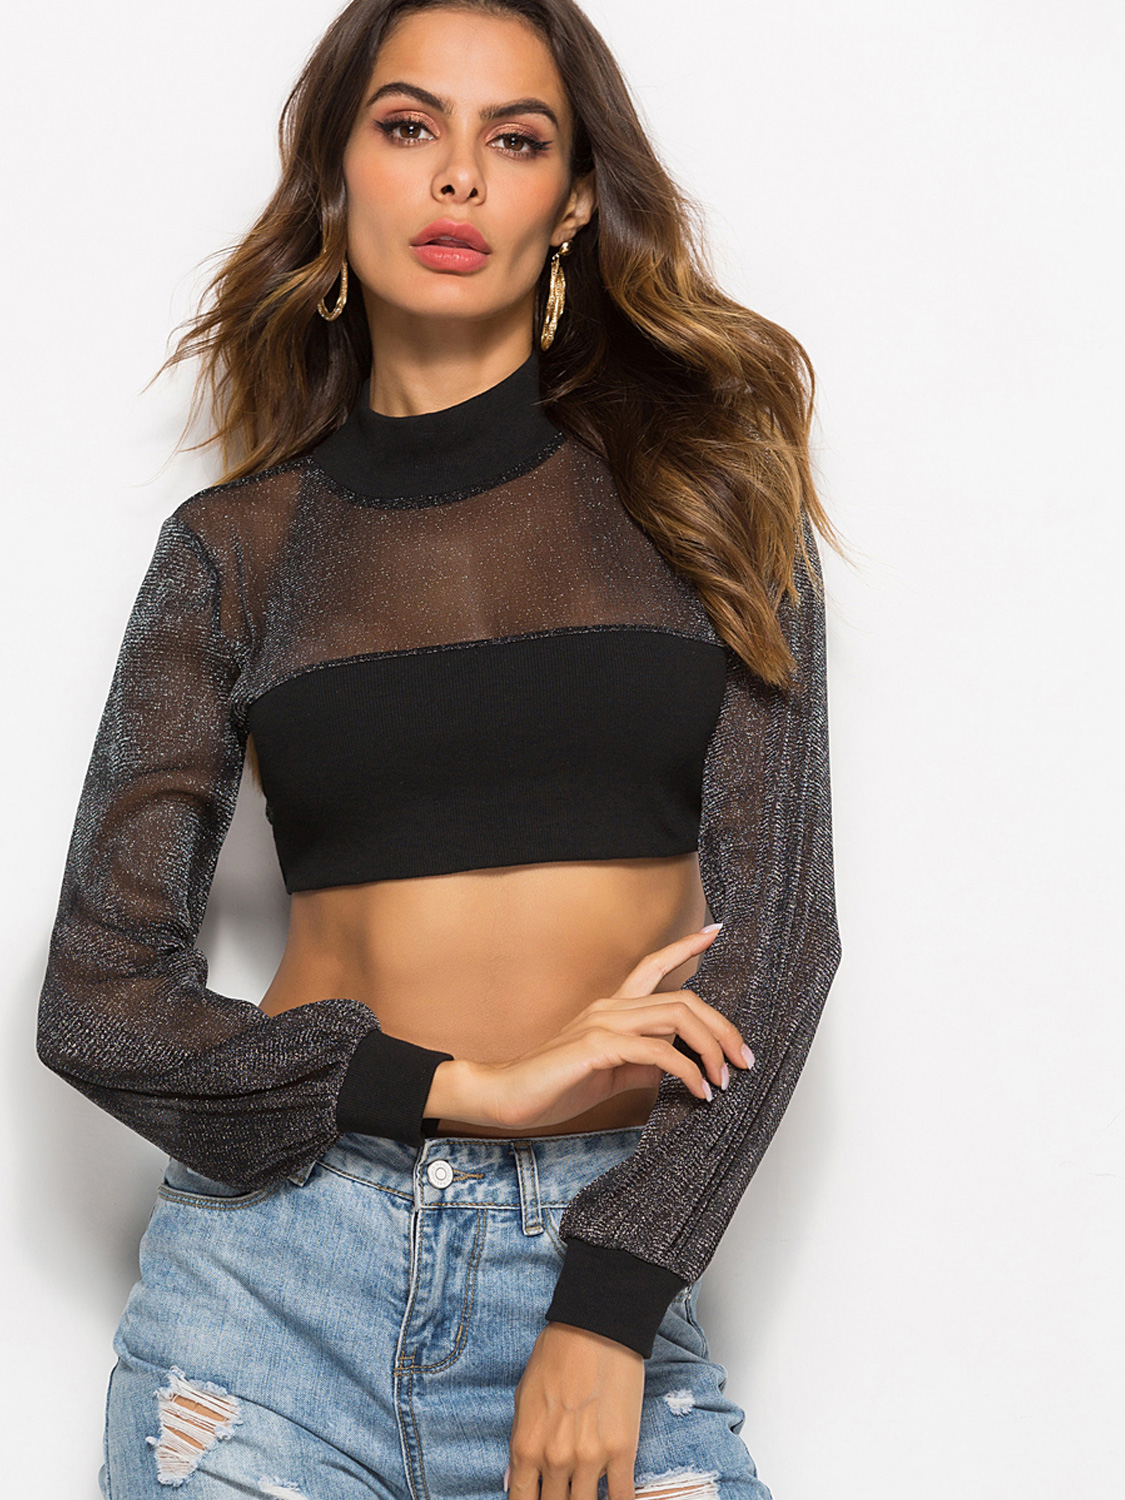 f855a405fccf9 High Neck Glitter Mesh Contrast Crop Tops with Tie Back. Loading zoom